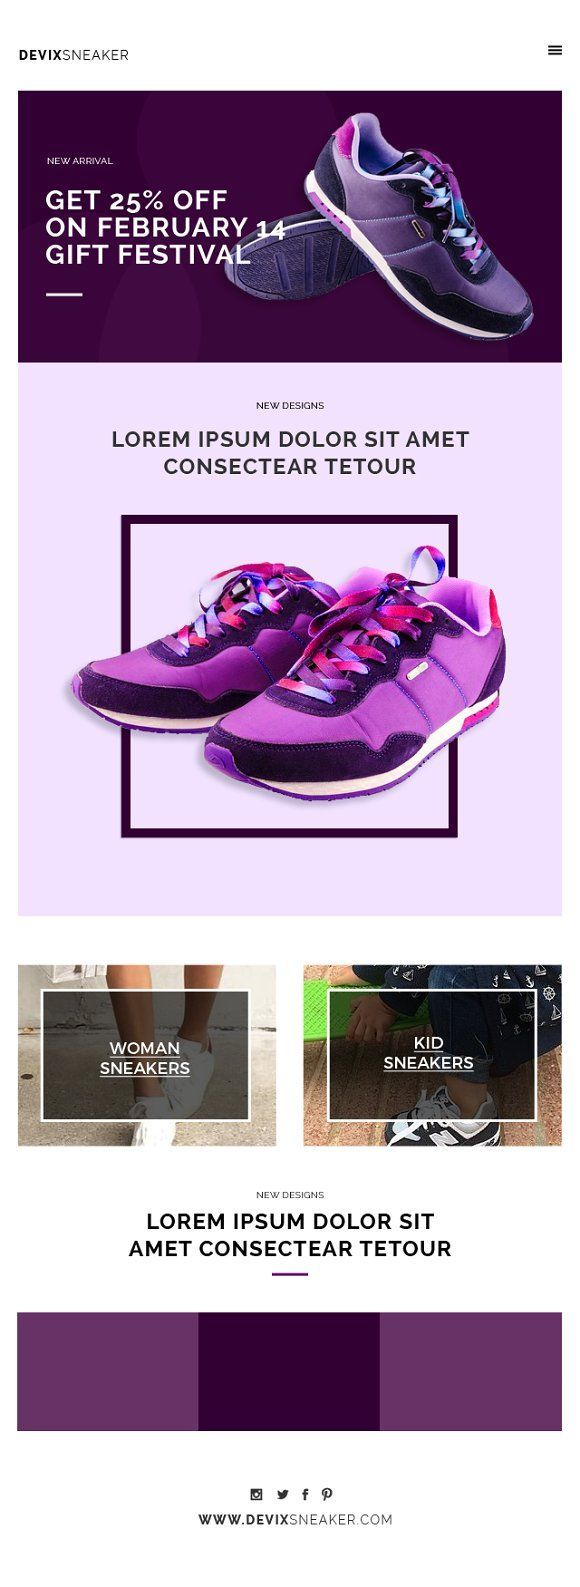 Email marketing templates don't happen to roam in the. Single Product Email Templates By Shadiq Jaya On Creative Market Email Blasts Ideas Of Email B Email Templates Email Template Design Modern Email Templates